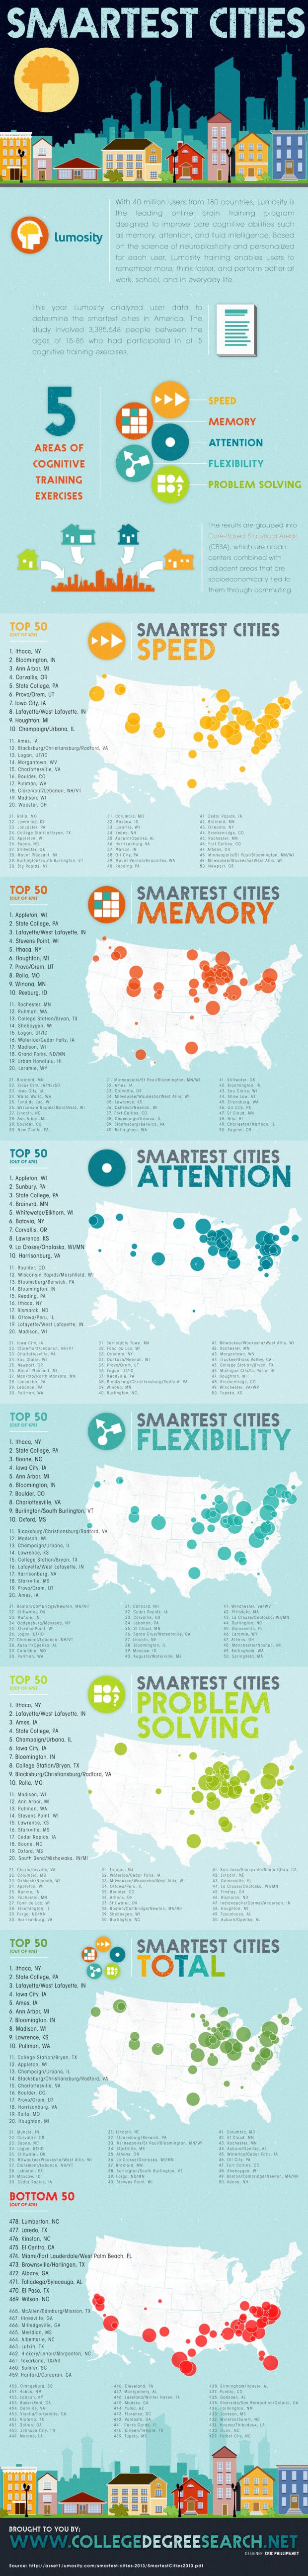 smartest-cities